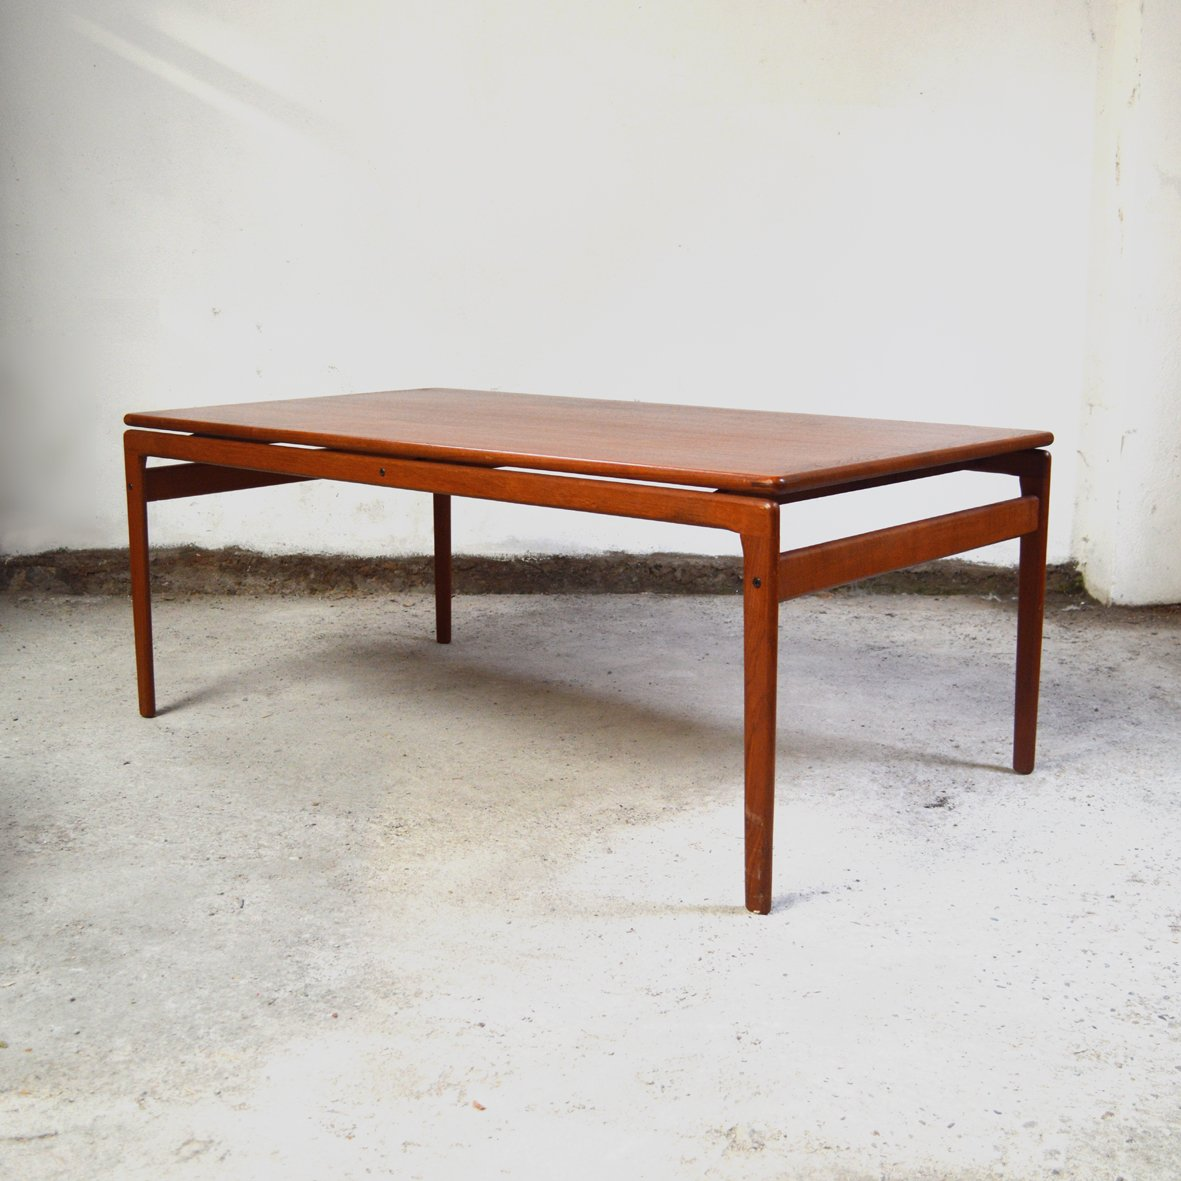 Teak Oil Coffee Table: Danish Teak Coffee Table From Trioh, 1970s For Sale At Pamono